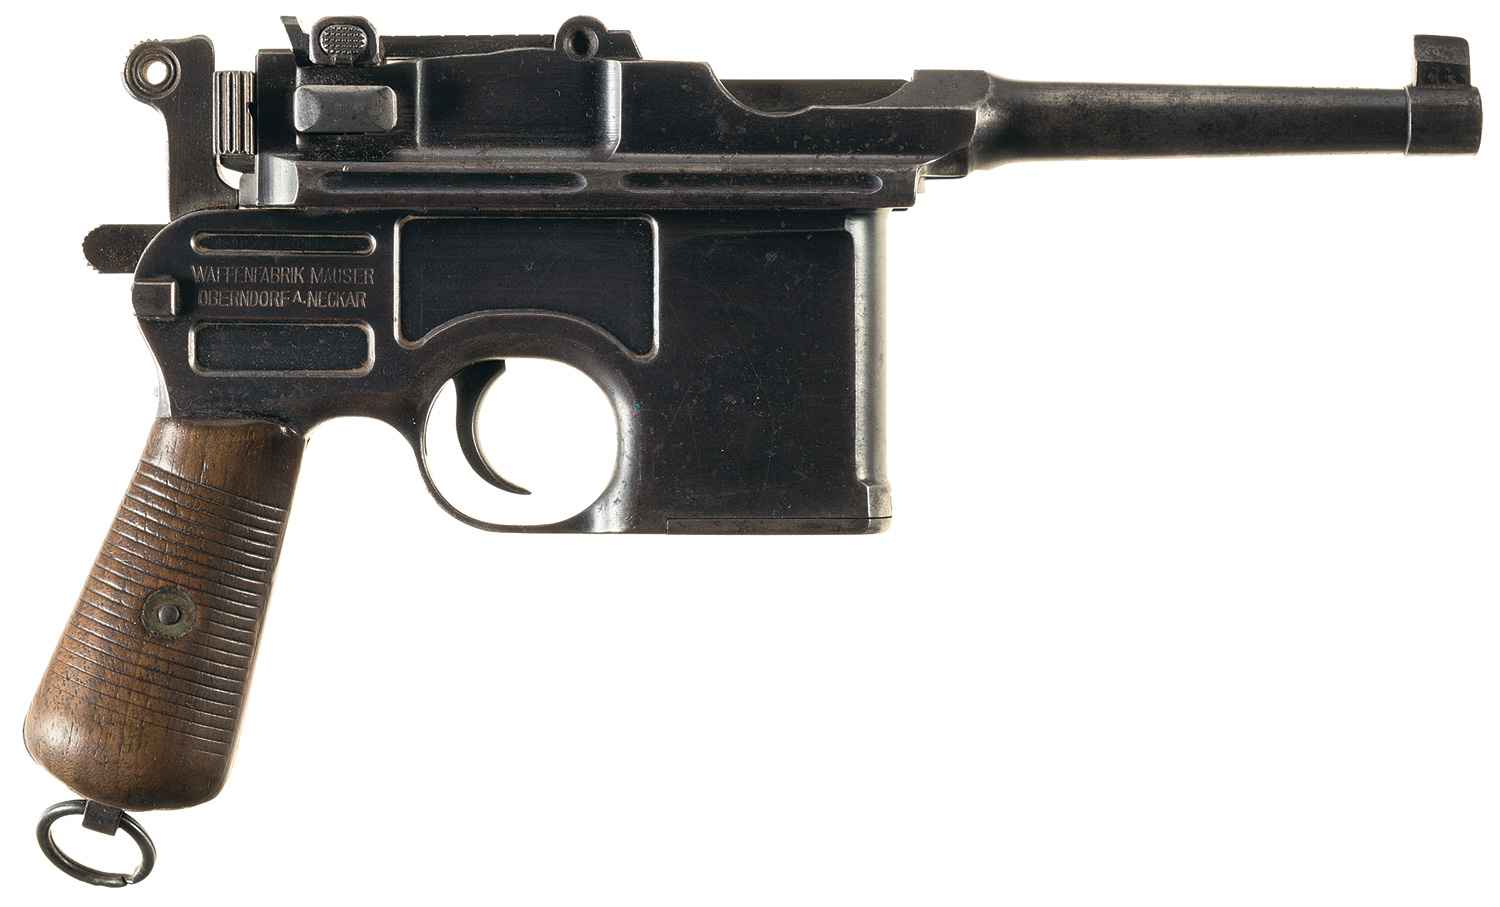 This Bolo Mauser has its original bluing and is describes as being in very good condition with all original parts. (Picture courtesy Rock Island Auction).